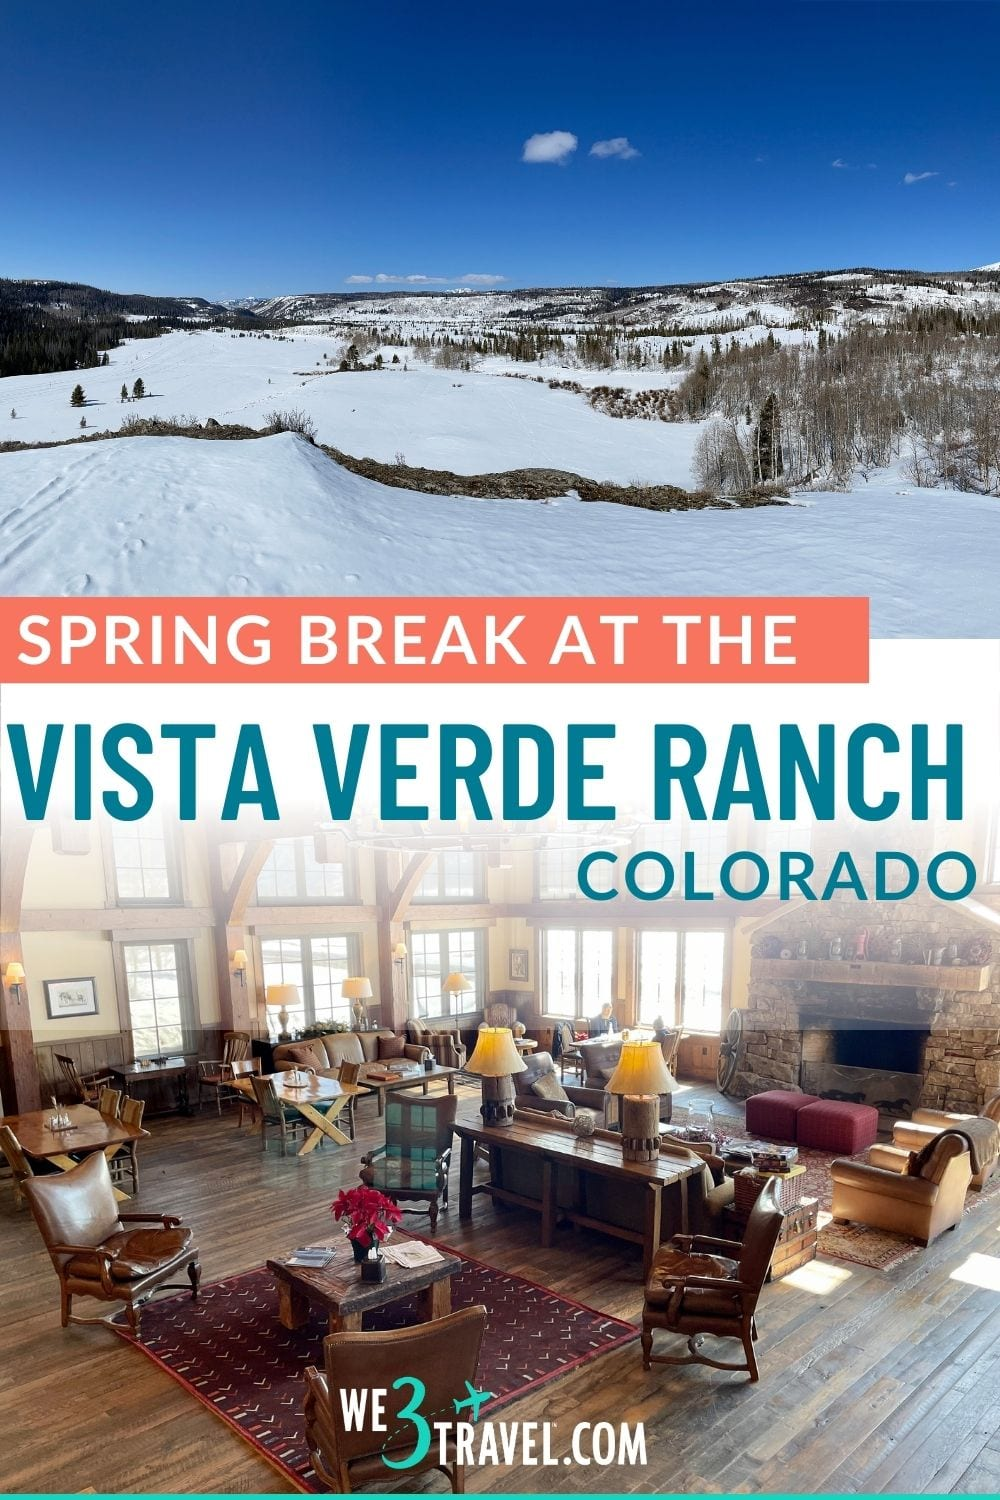 Have you thought about a dude ranch vacation for spring break? The Vista Verde Ranch in Steamboat Springs, Colorado is a luxury ranch with plentiful all-inclusive activities making it a perfect family vacation destination idea.